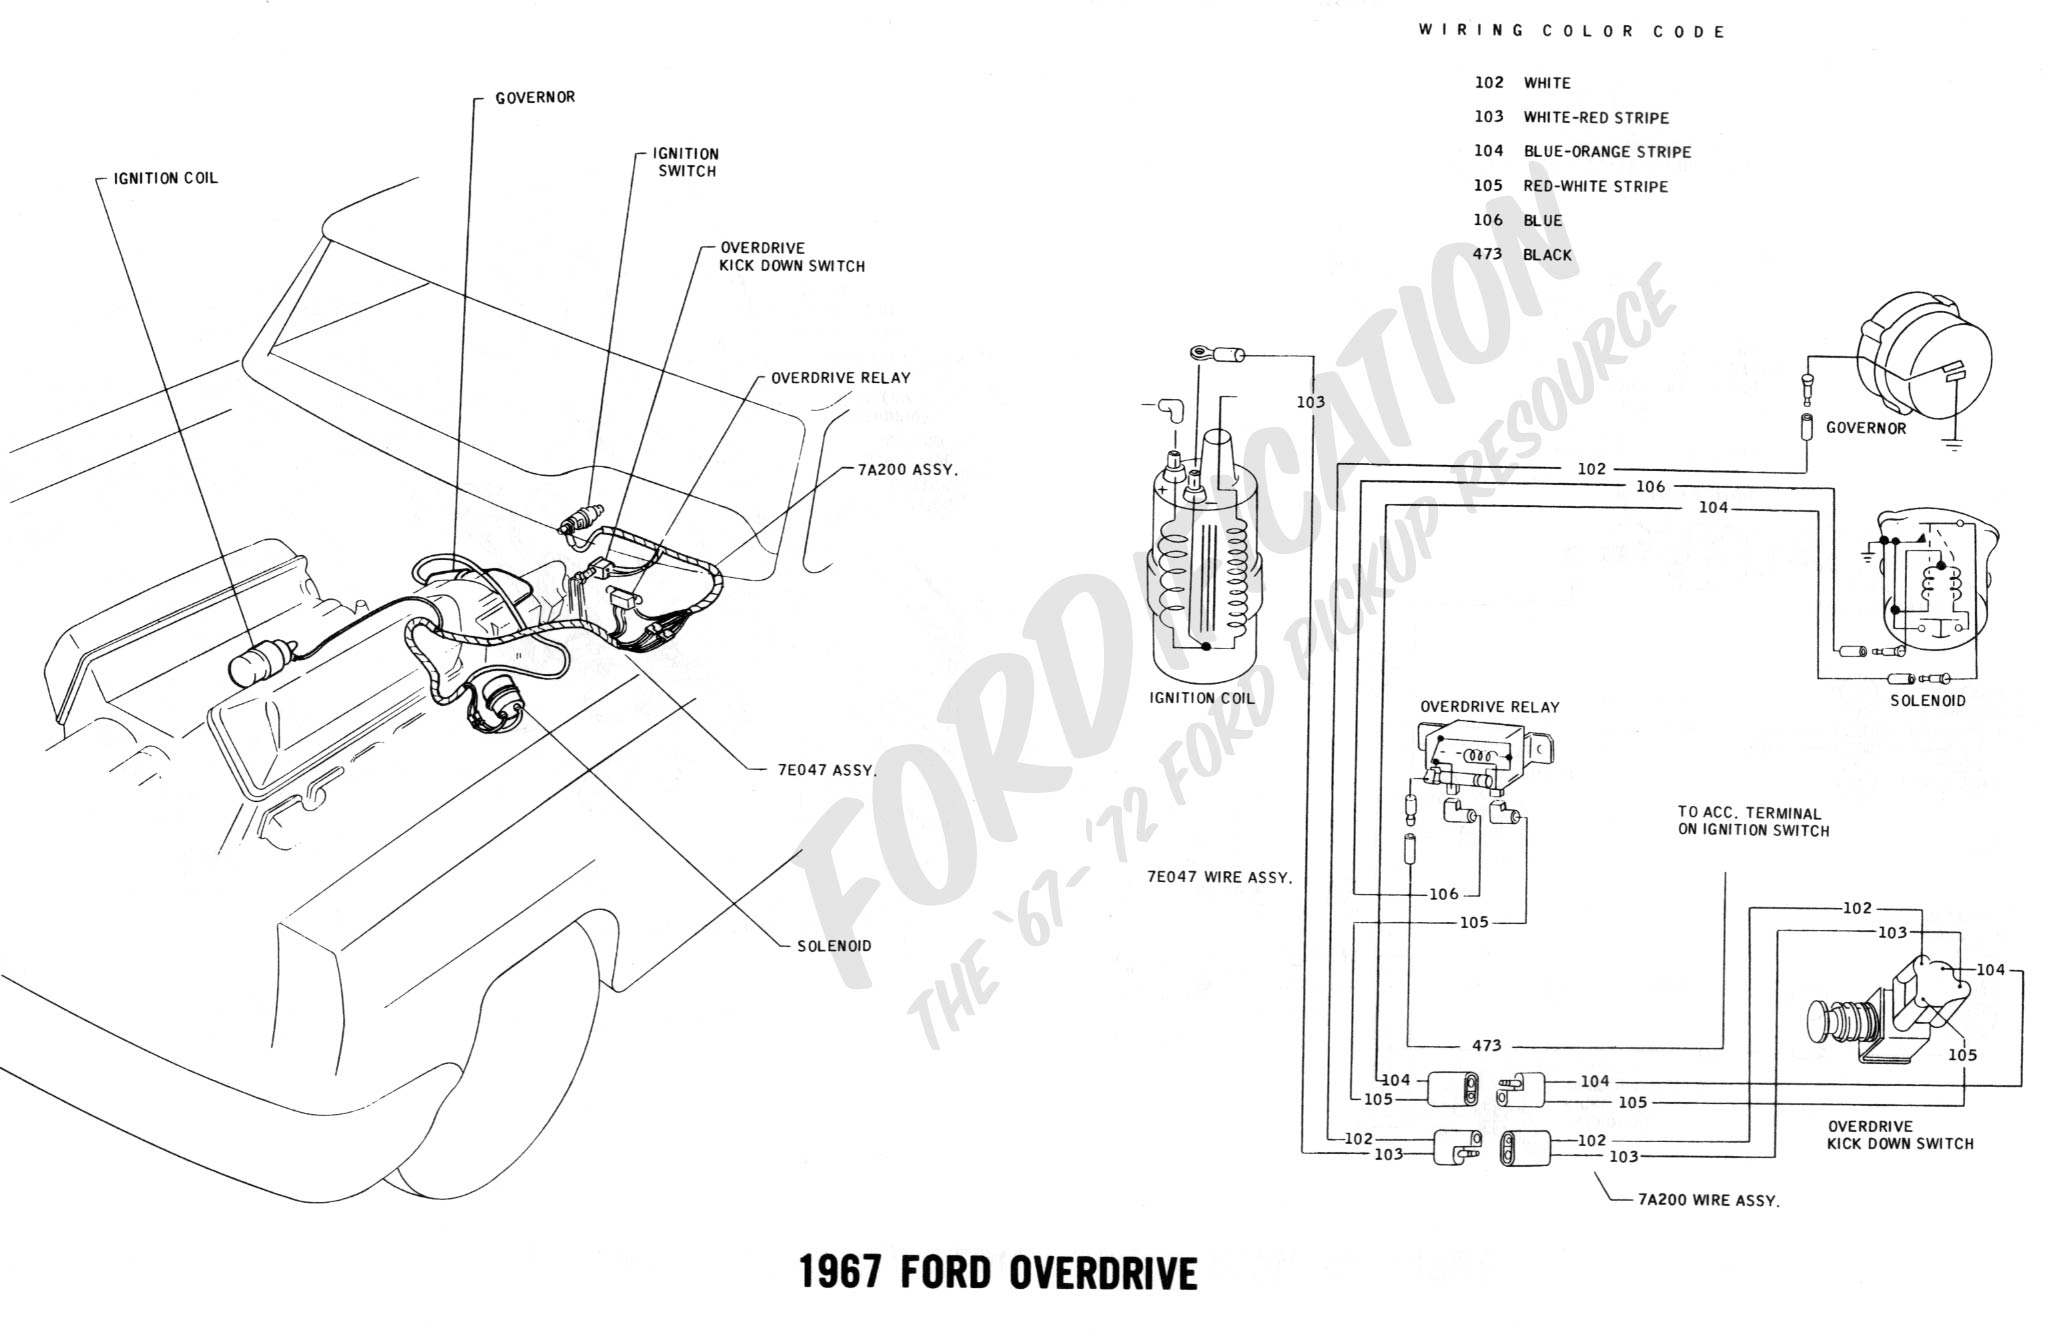 1974 ford f250 wiring diagram ford truck technical drawings and schematics - section h ... 2000 f250 wiring diagram overdrive